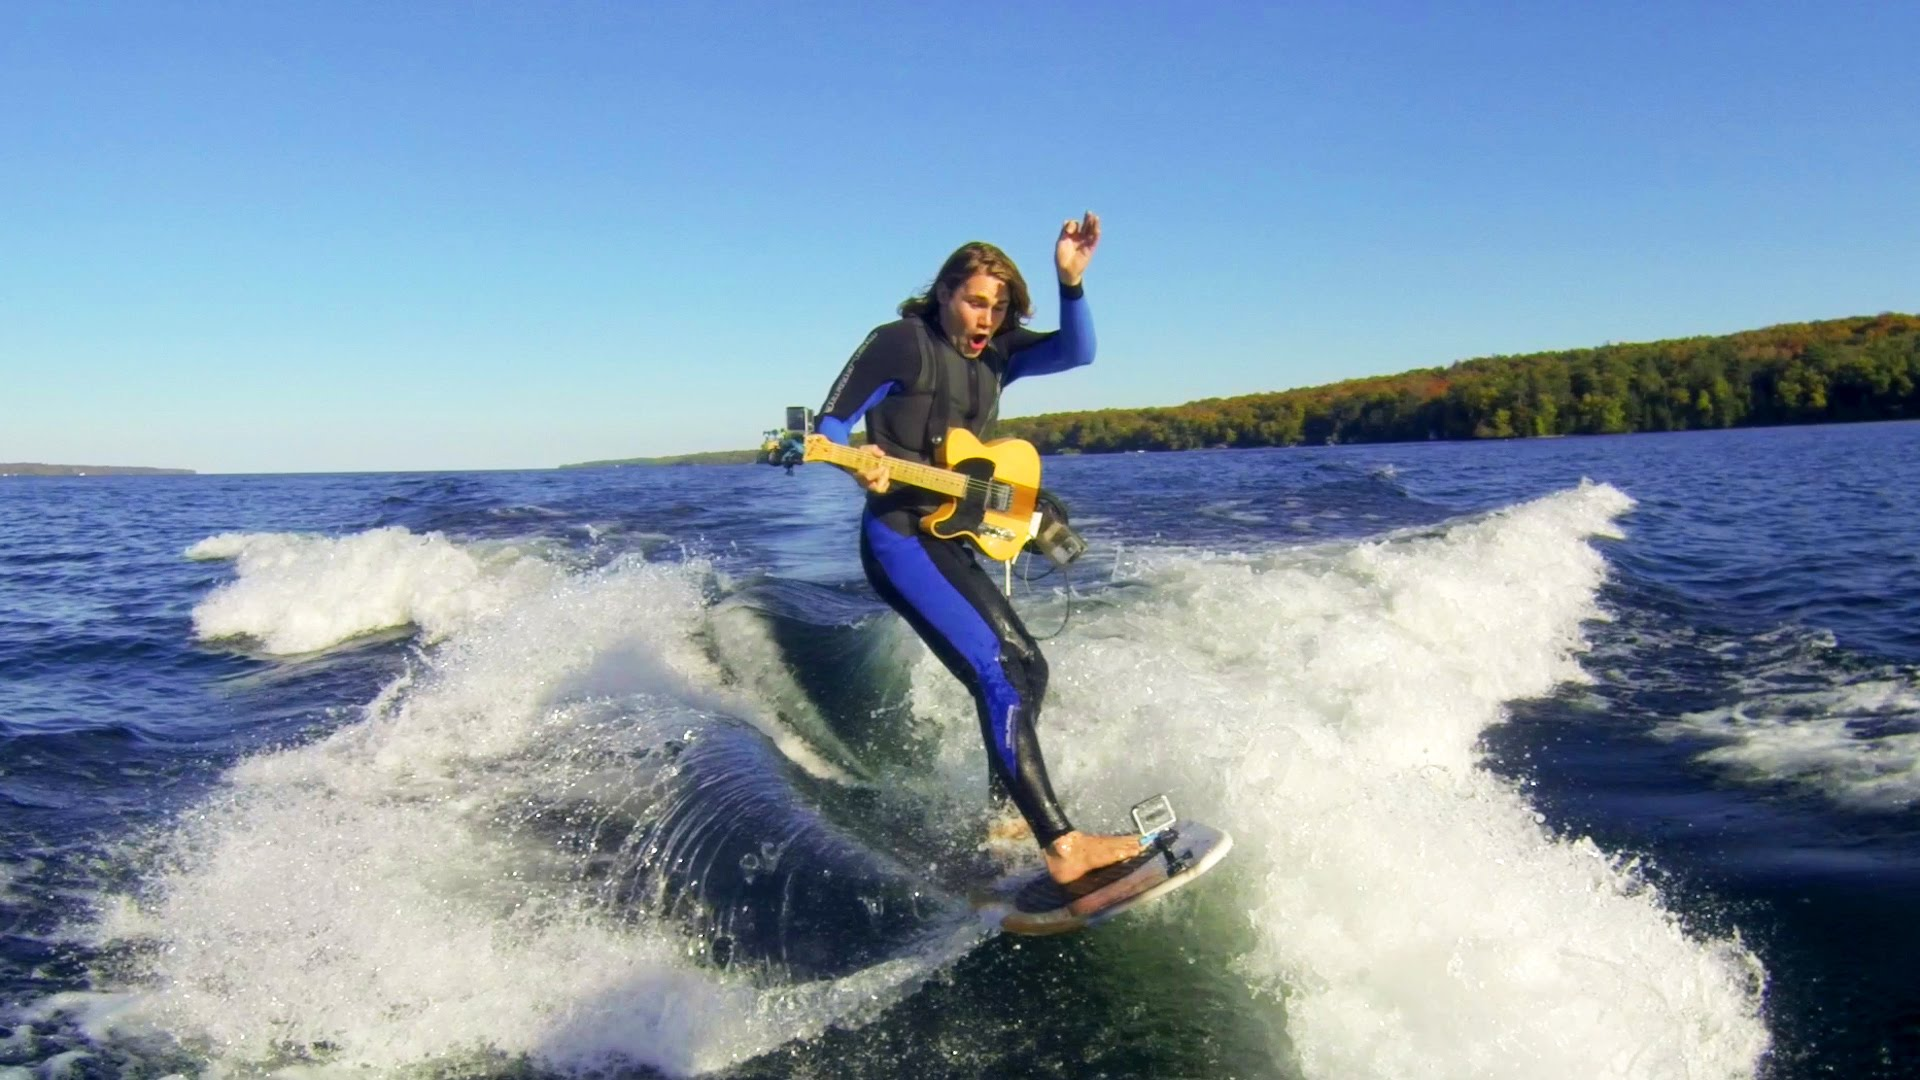 Girl On Surfboard Wallpaper Gopro Video Of A Guitar Player Shredding While Riding A